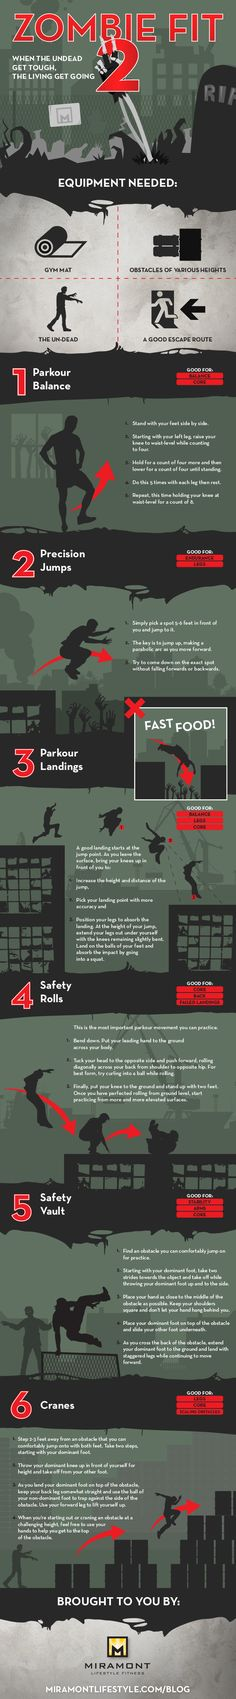 Six essential parkour moves to help you survive the zombie apocalypse